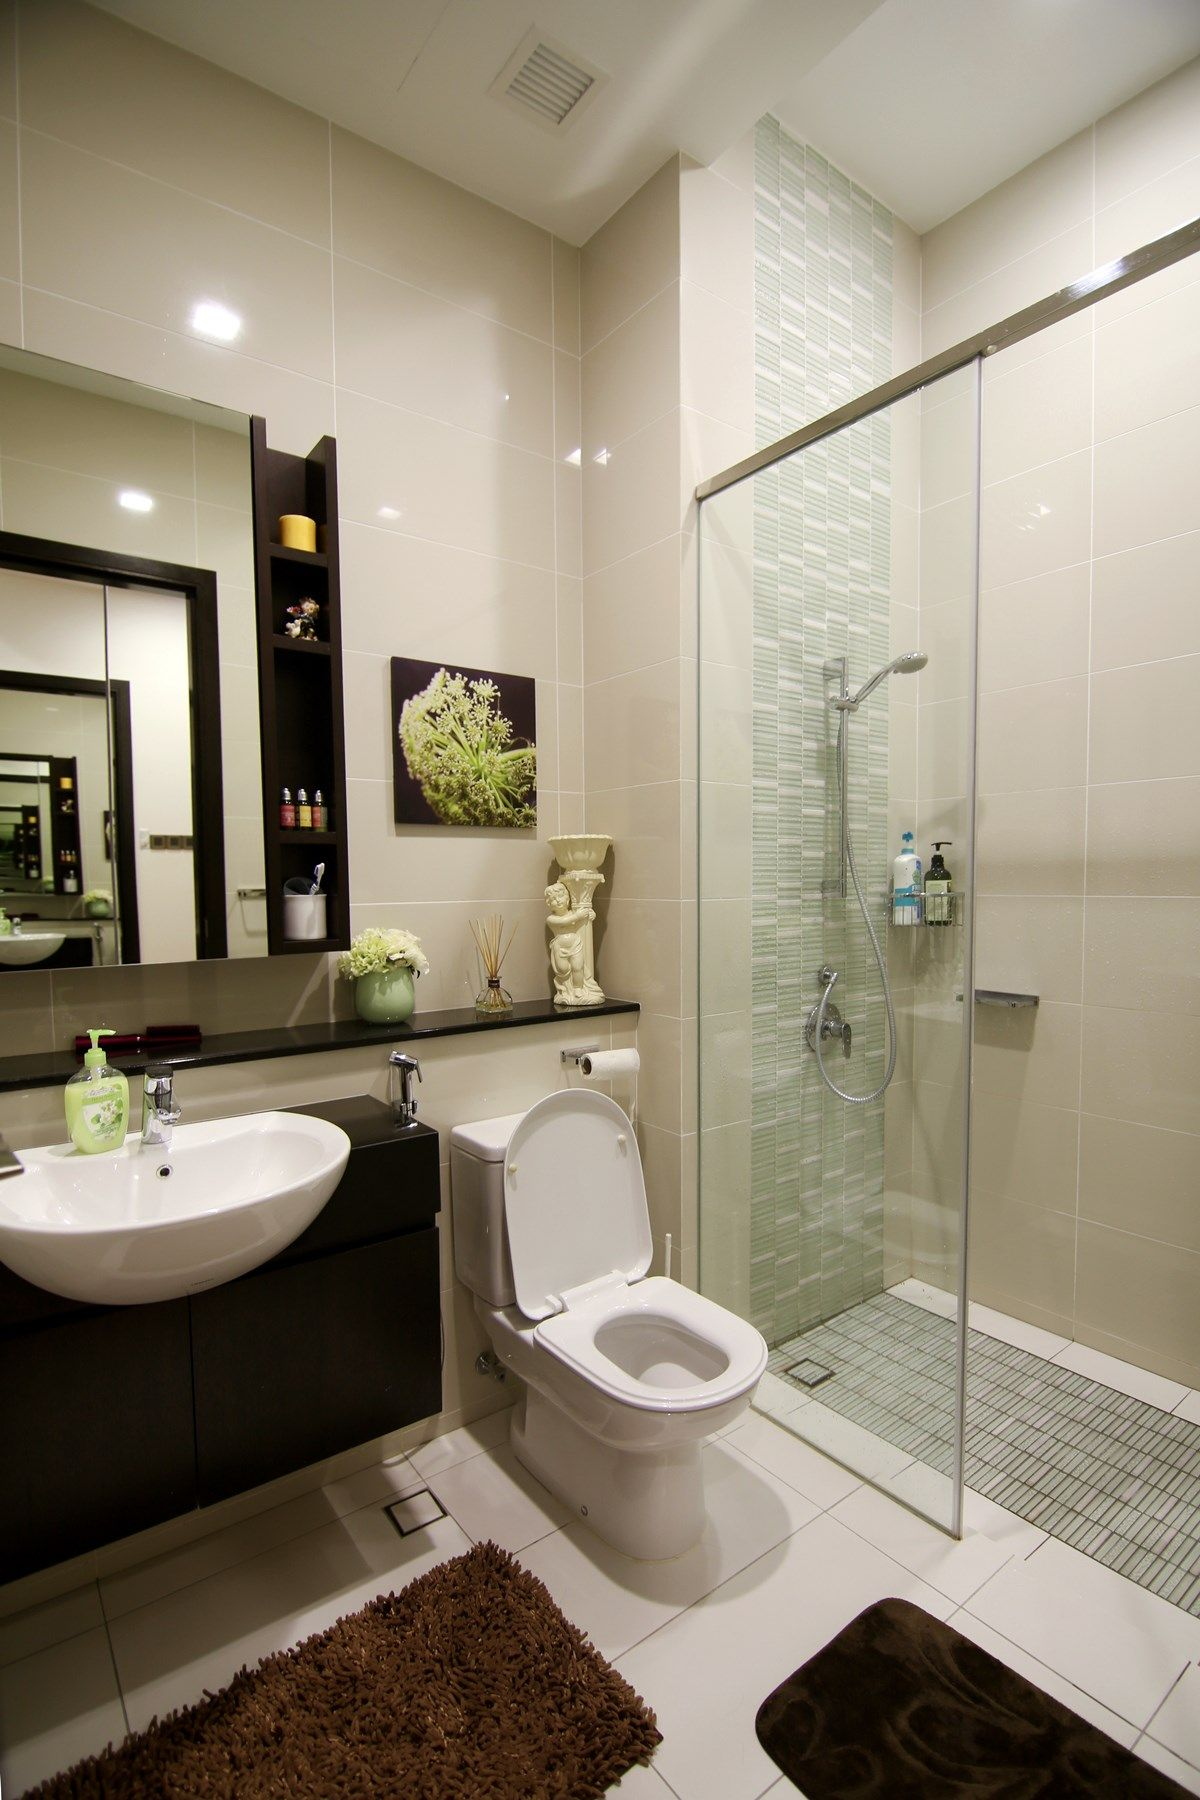 Simple And Nice Bathroom Design Love How The Designer Has